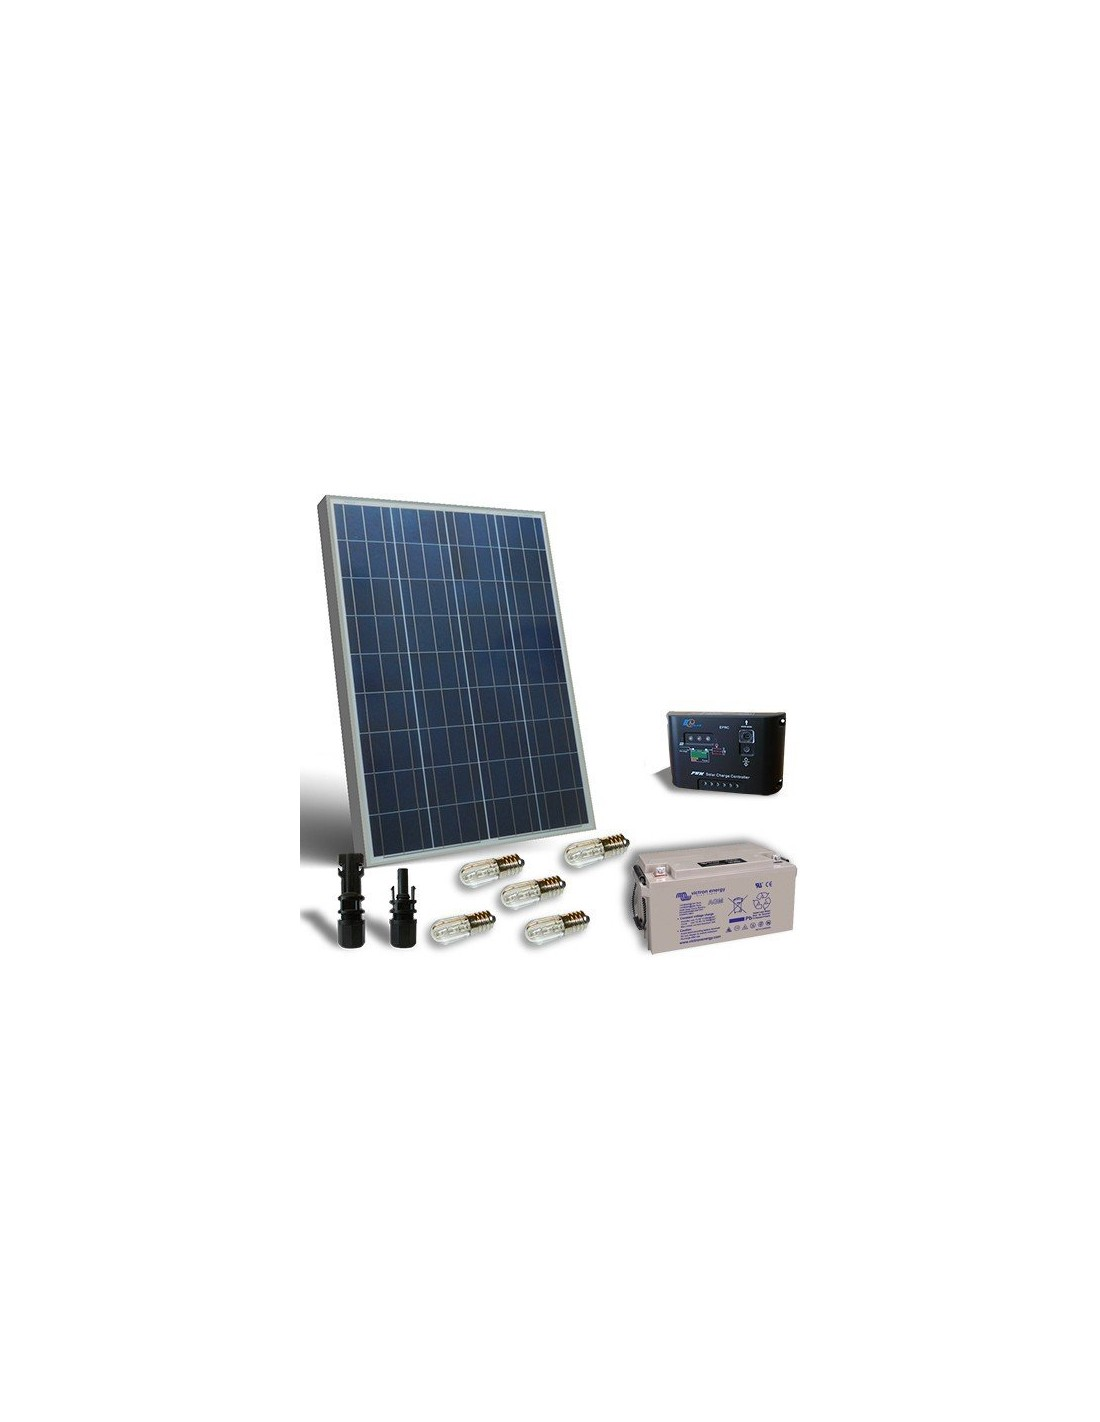 kit solaire votif 80w 12v panneau solaire regulateur de charge led batterie 38ah. Black Bedroom Furniture Sets. Home Design Ideas